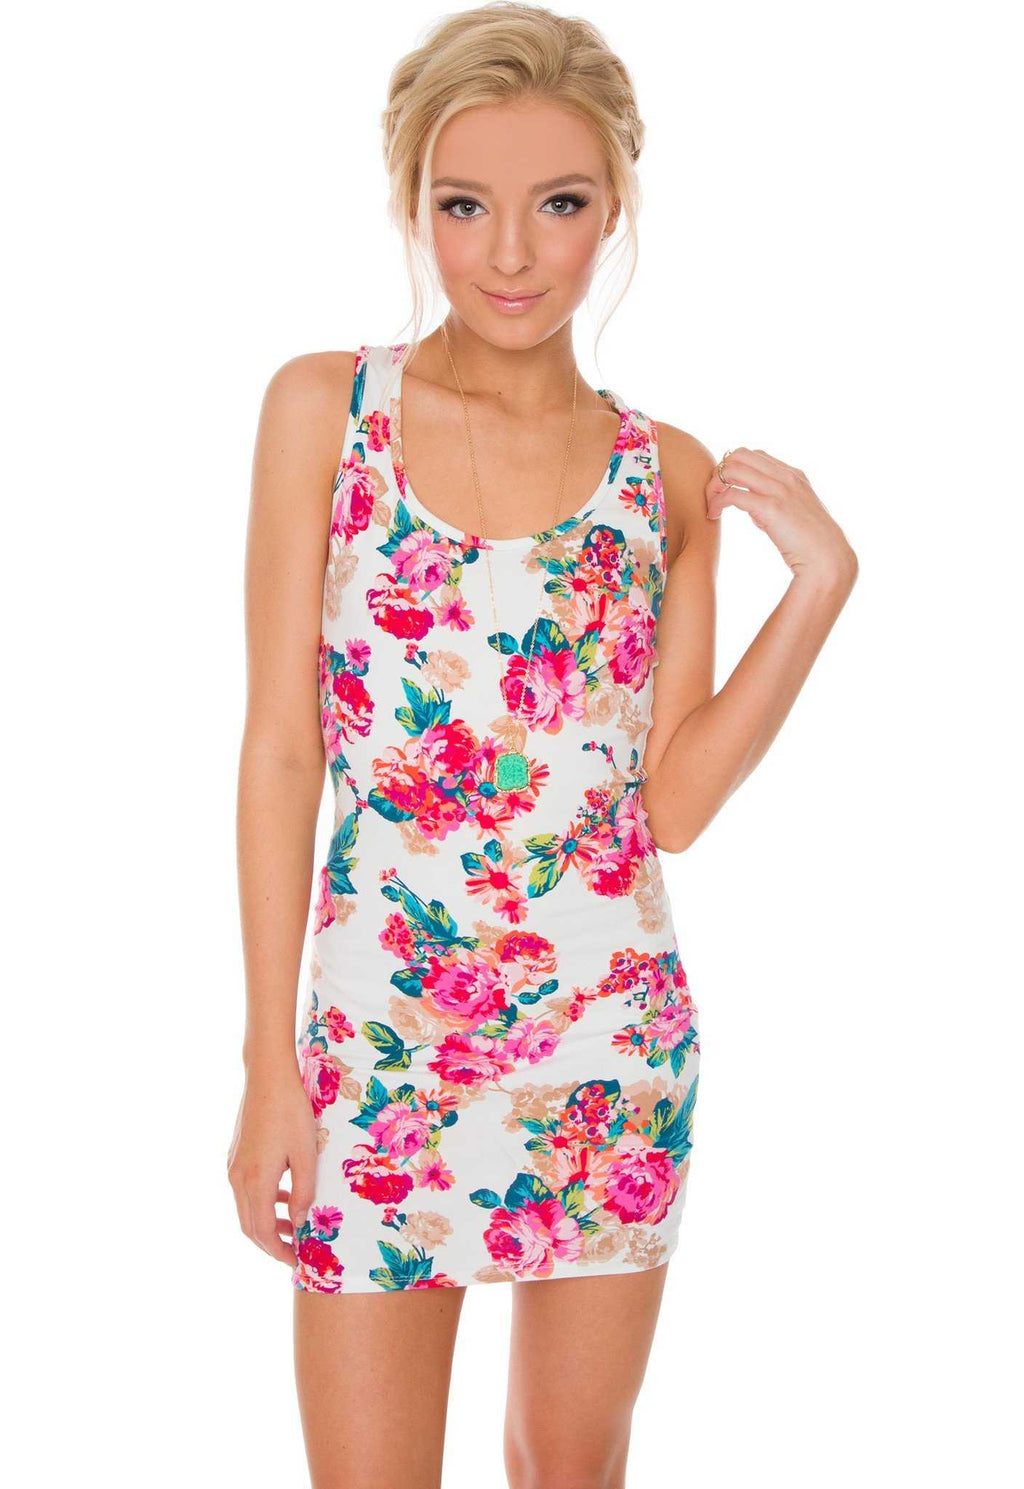 Dresses - Mamma Mia Floral Dress